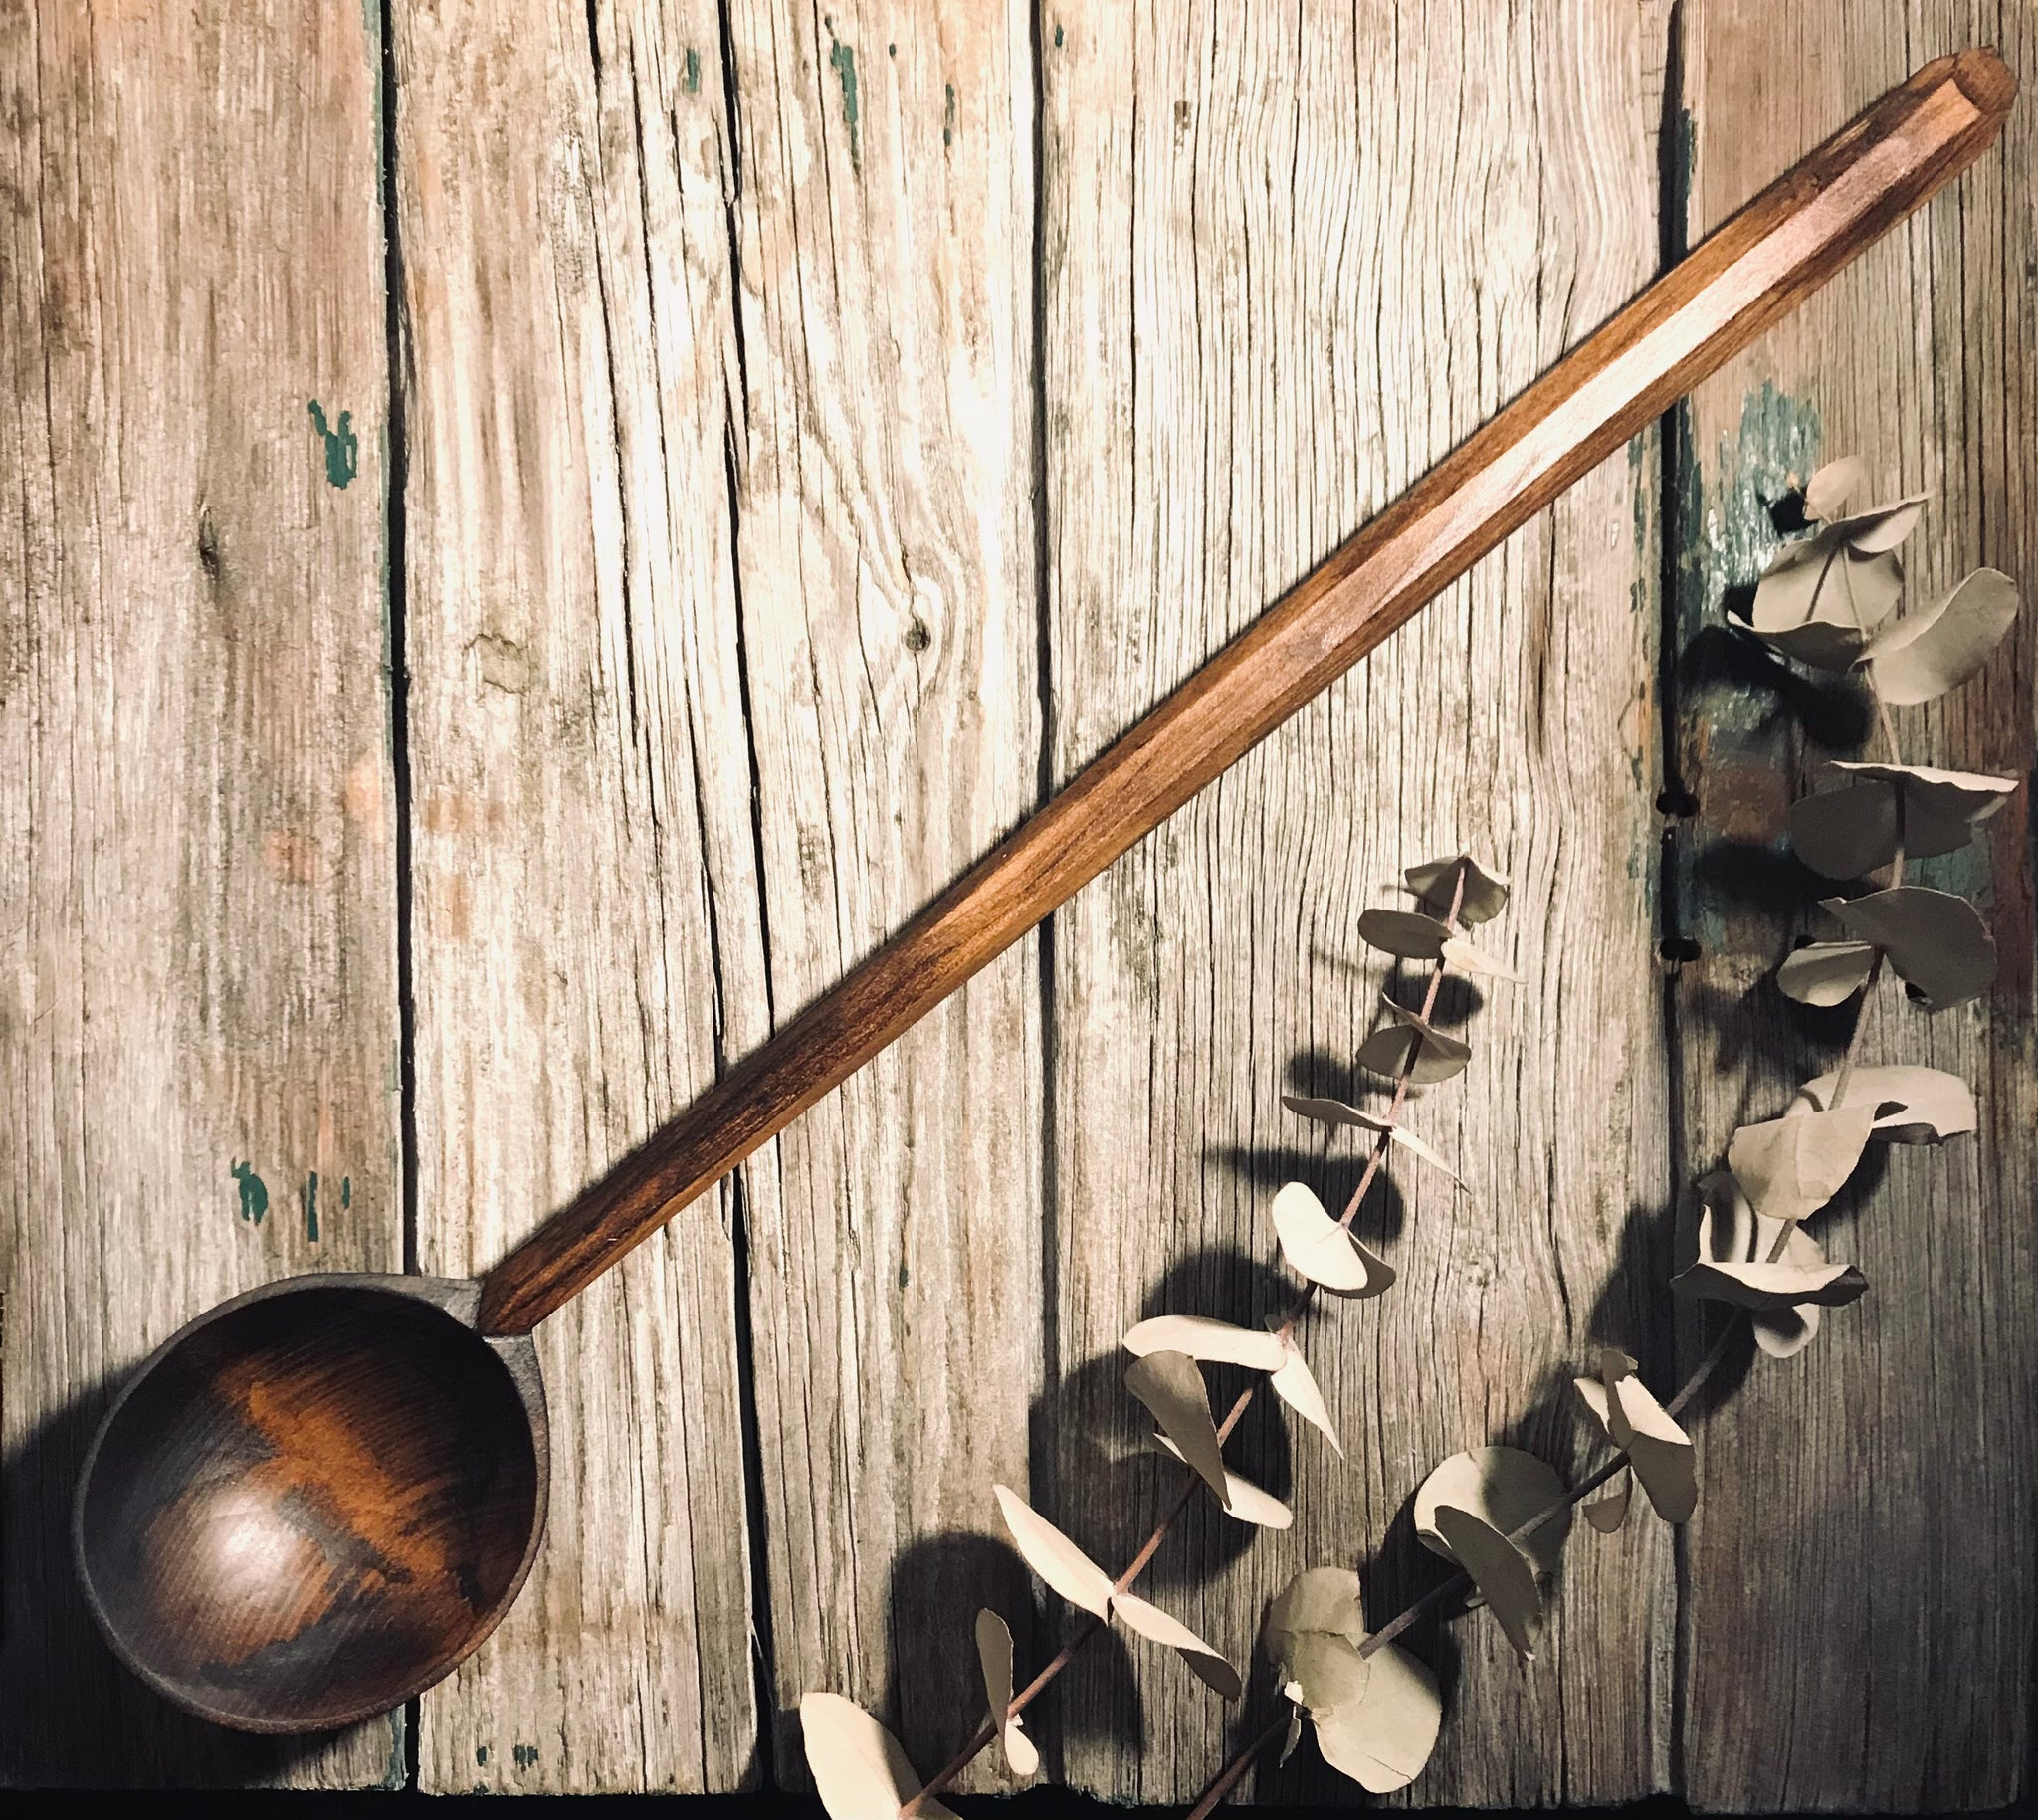 Ebonised Cherry Wood, Long Handled Cooking Spoon OP290